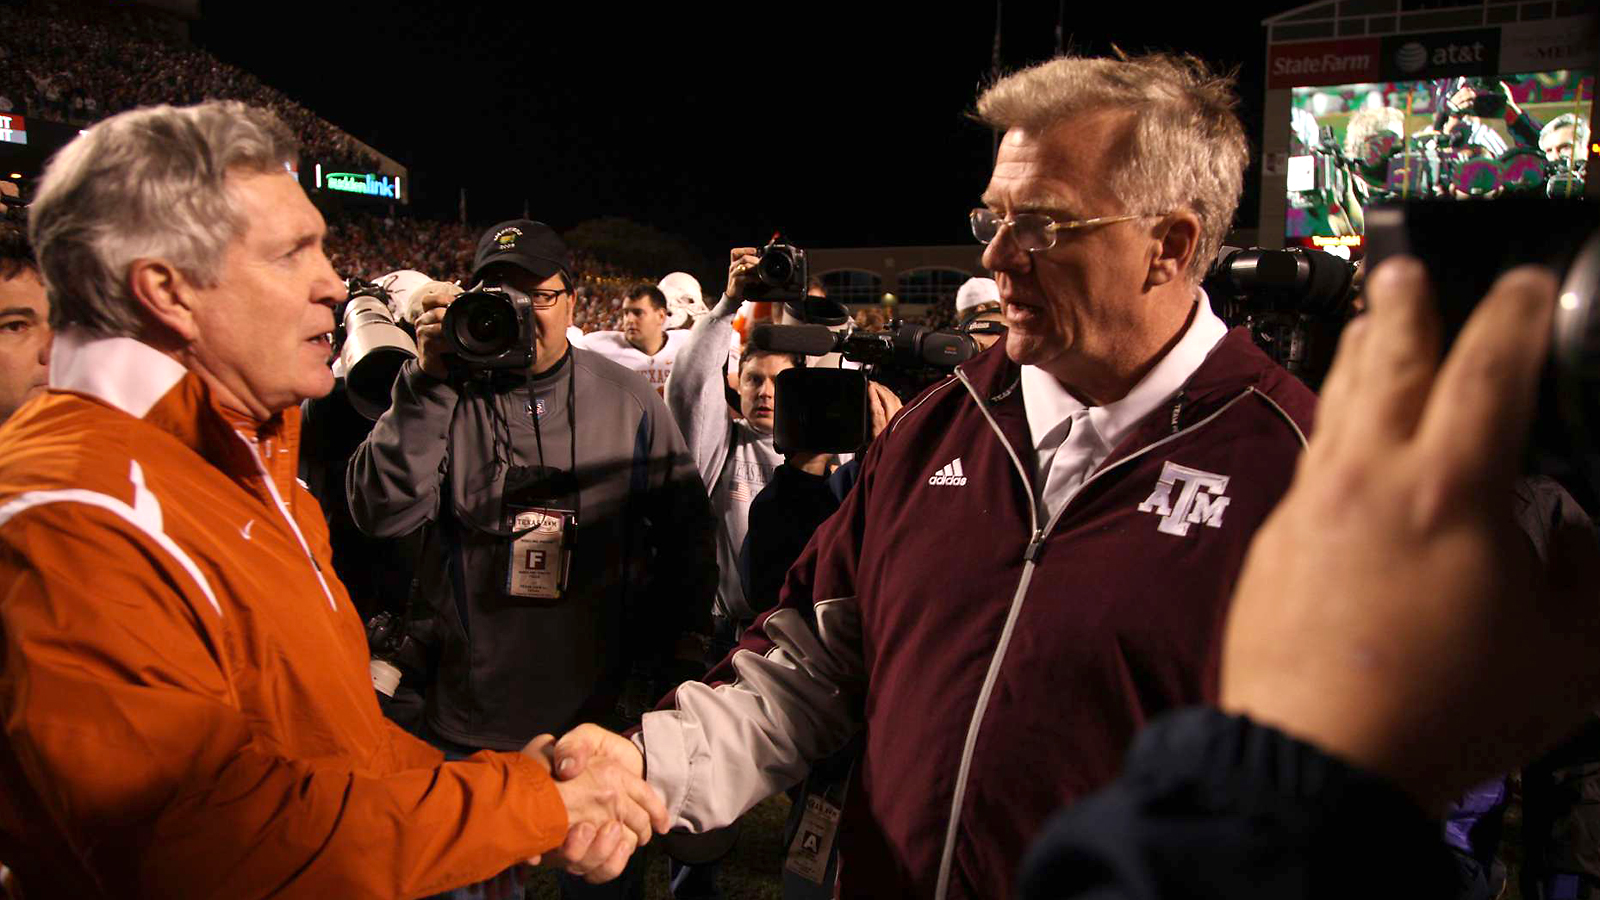 Congratulating Mack Brown after Texas's 49-39 win over Sherman's Texas A&M Aggies in November 2009. (Photo: Darren Carroll for Sports Illustrated)